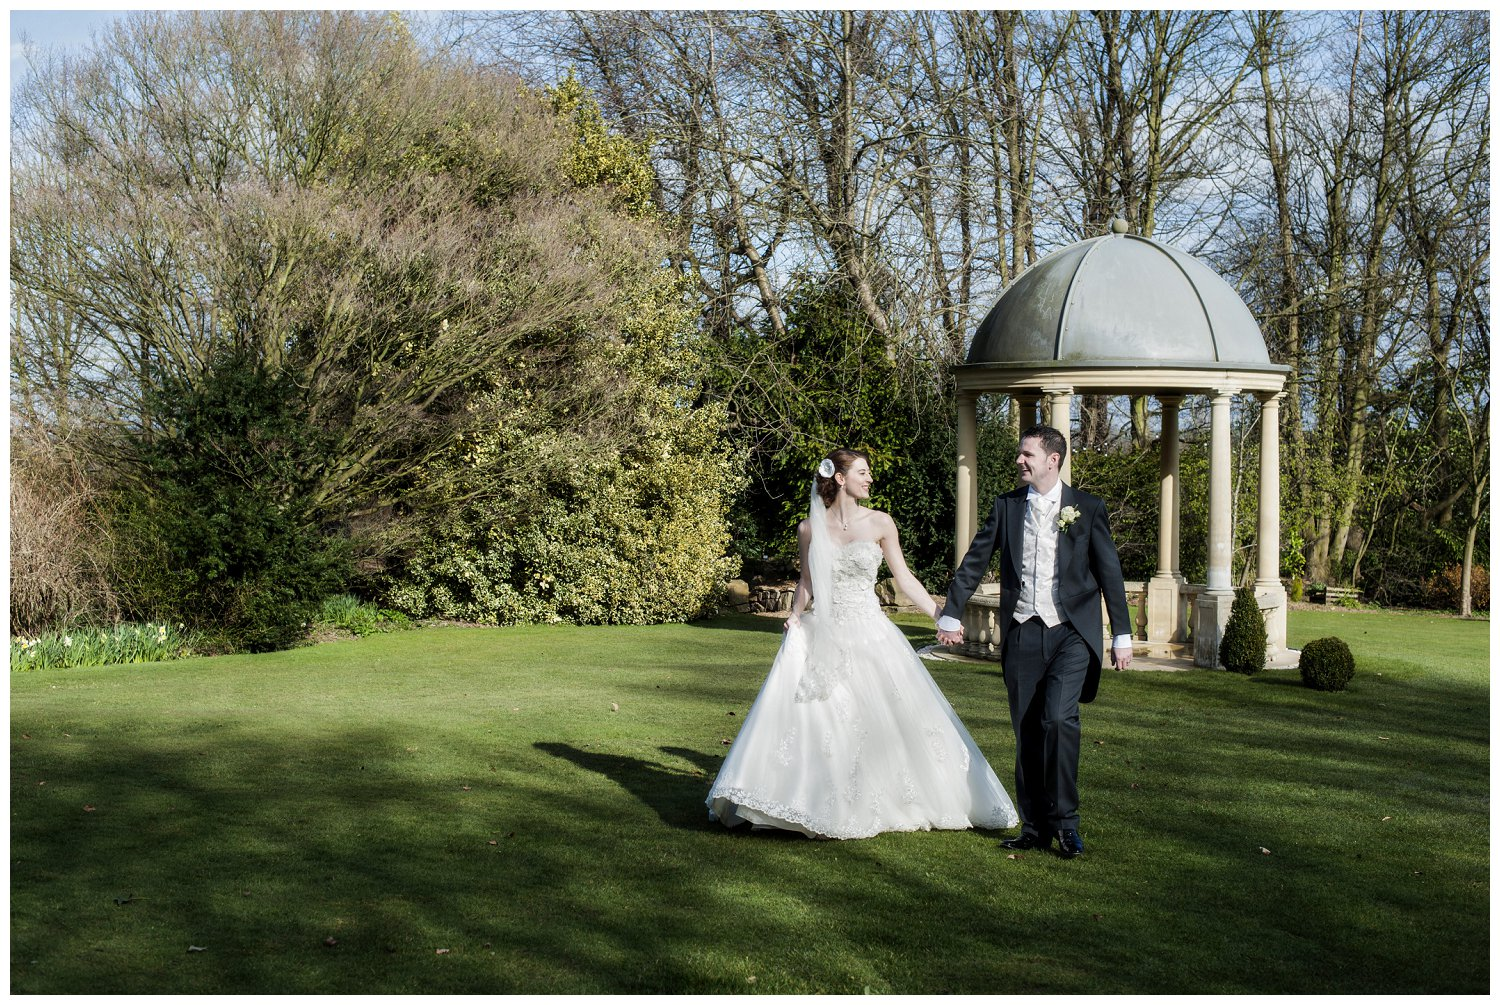 Couple, Wedding at Ringwood Hall, Ringwood Hall Hotel